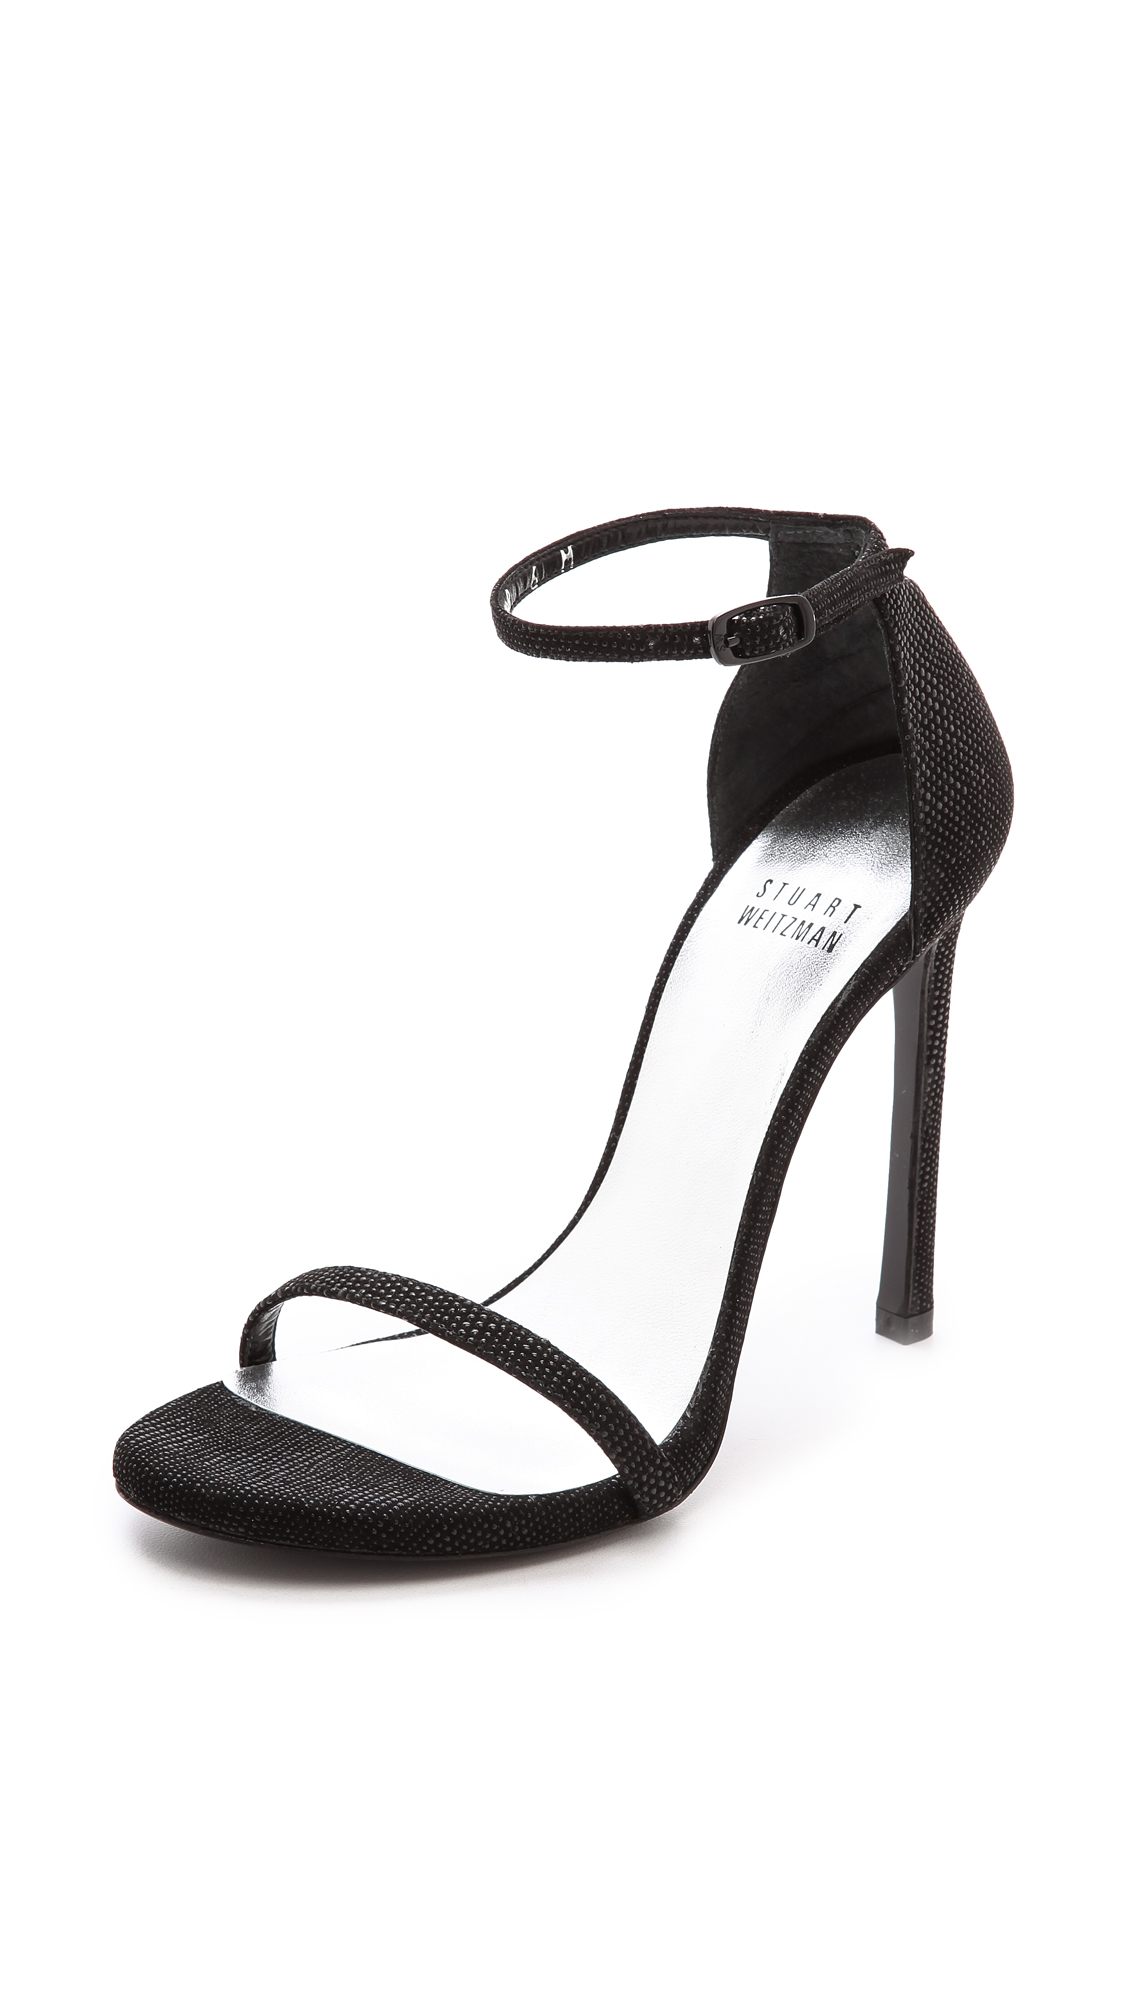 Stuart Weitzman Nudist Single Band Sandals | SHOPBOP